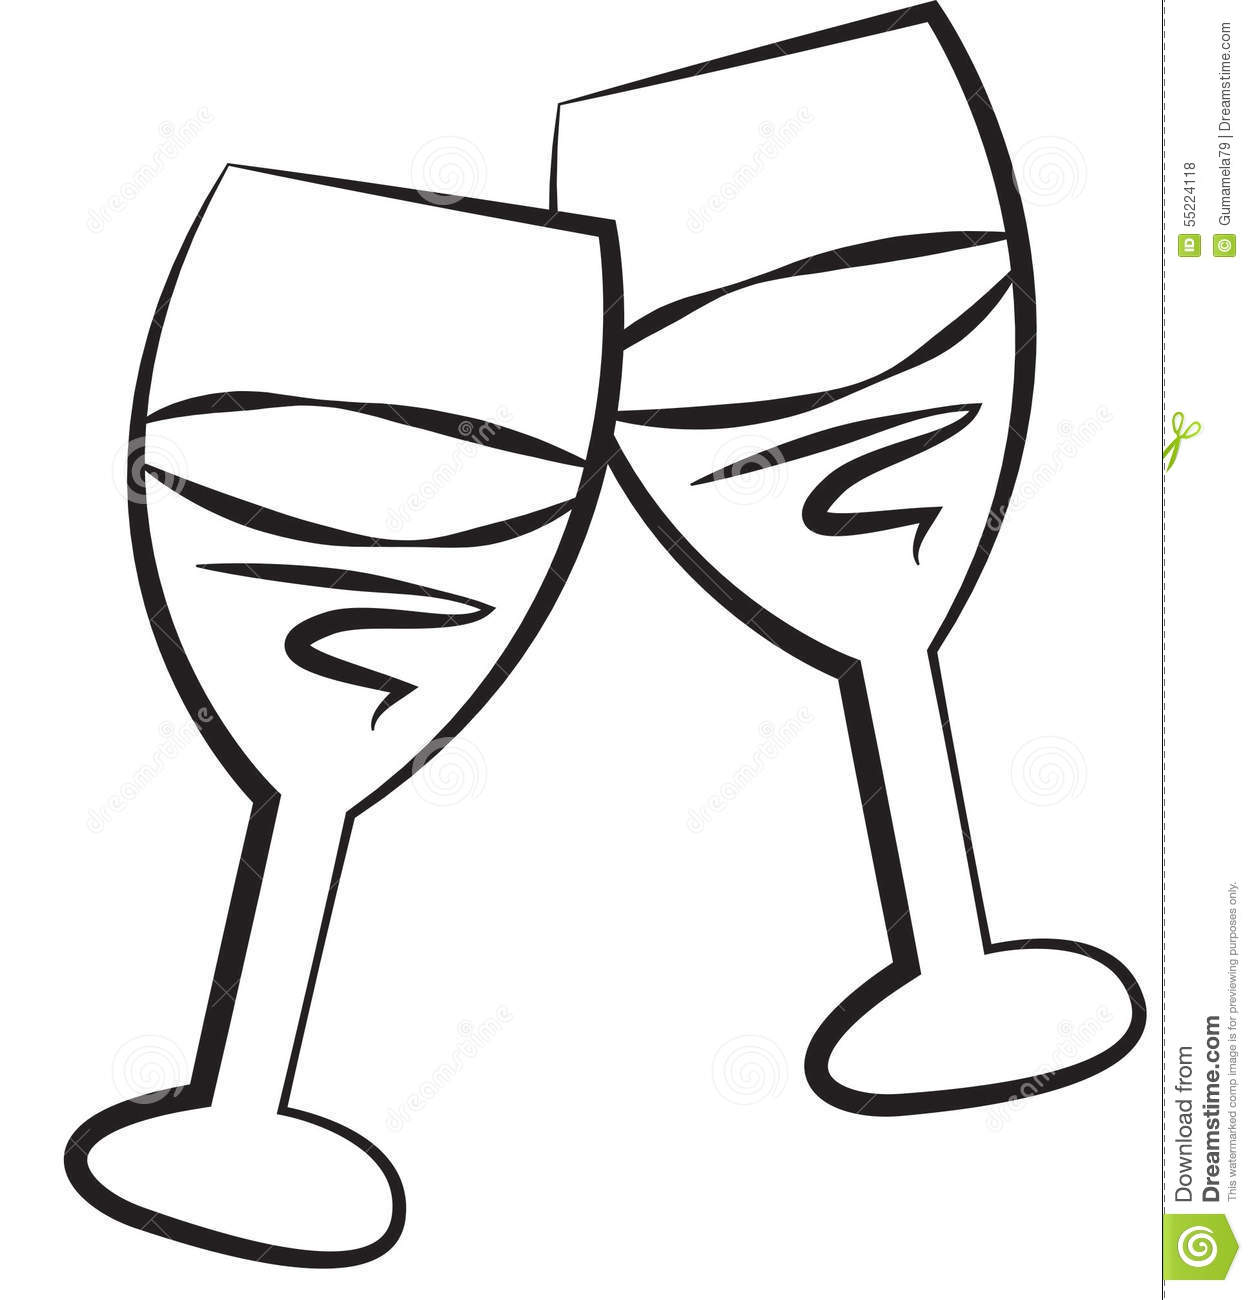 Line Drawing Glasses : Stock image wine glass illustration